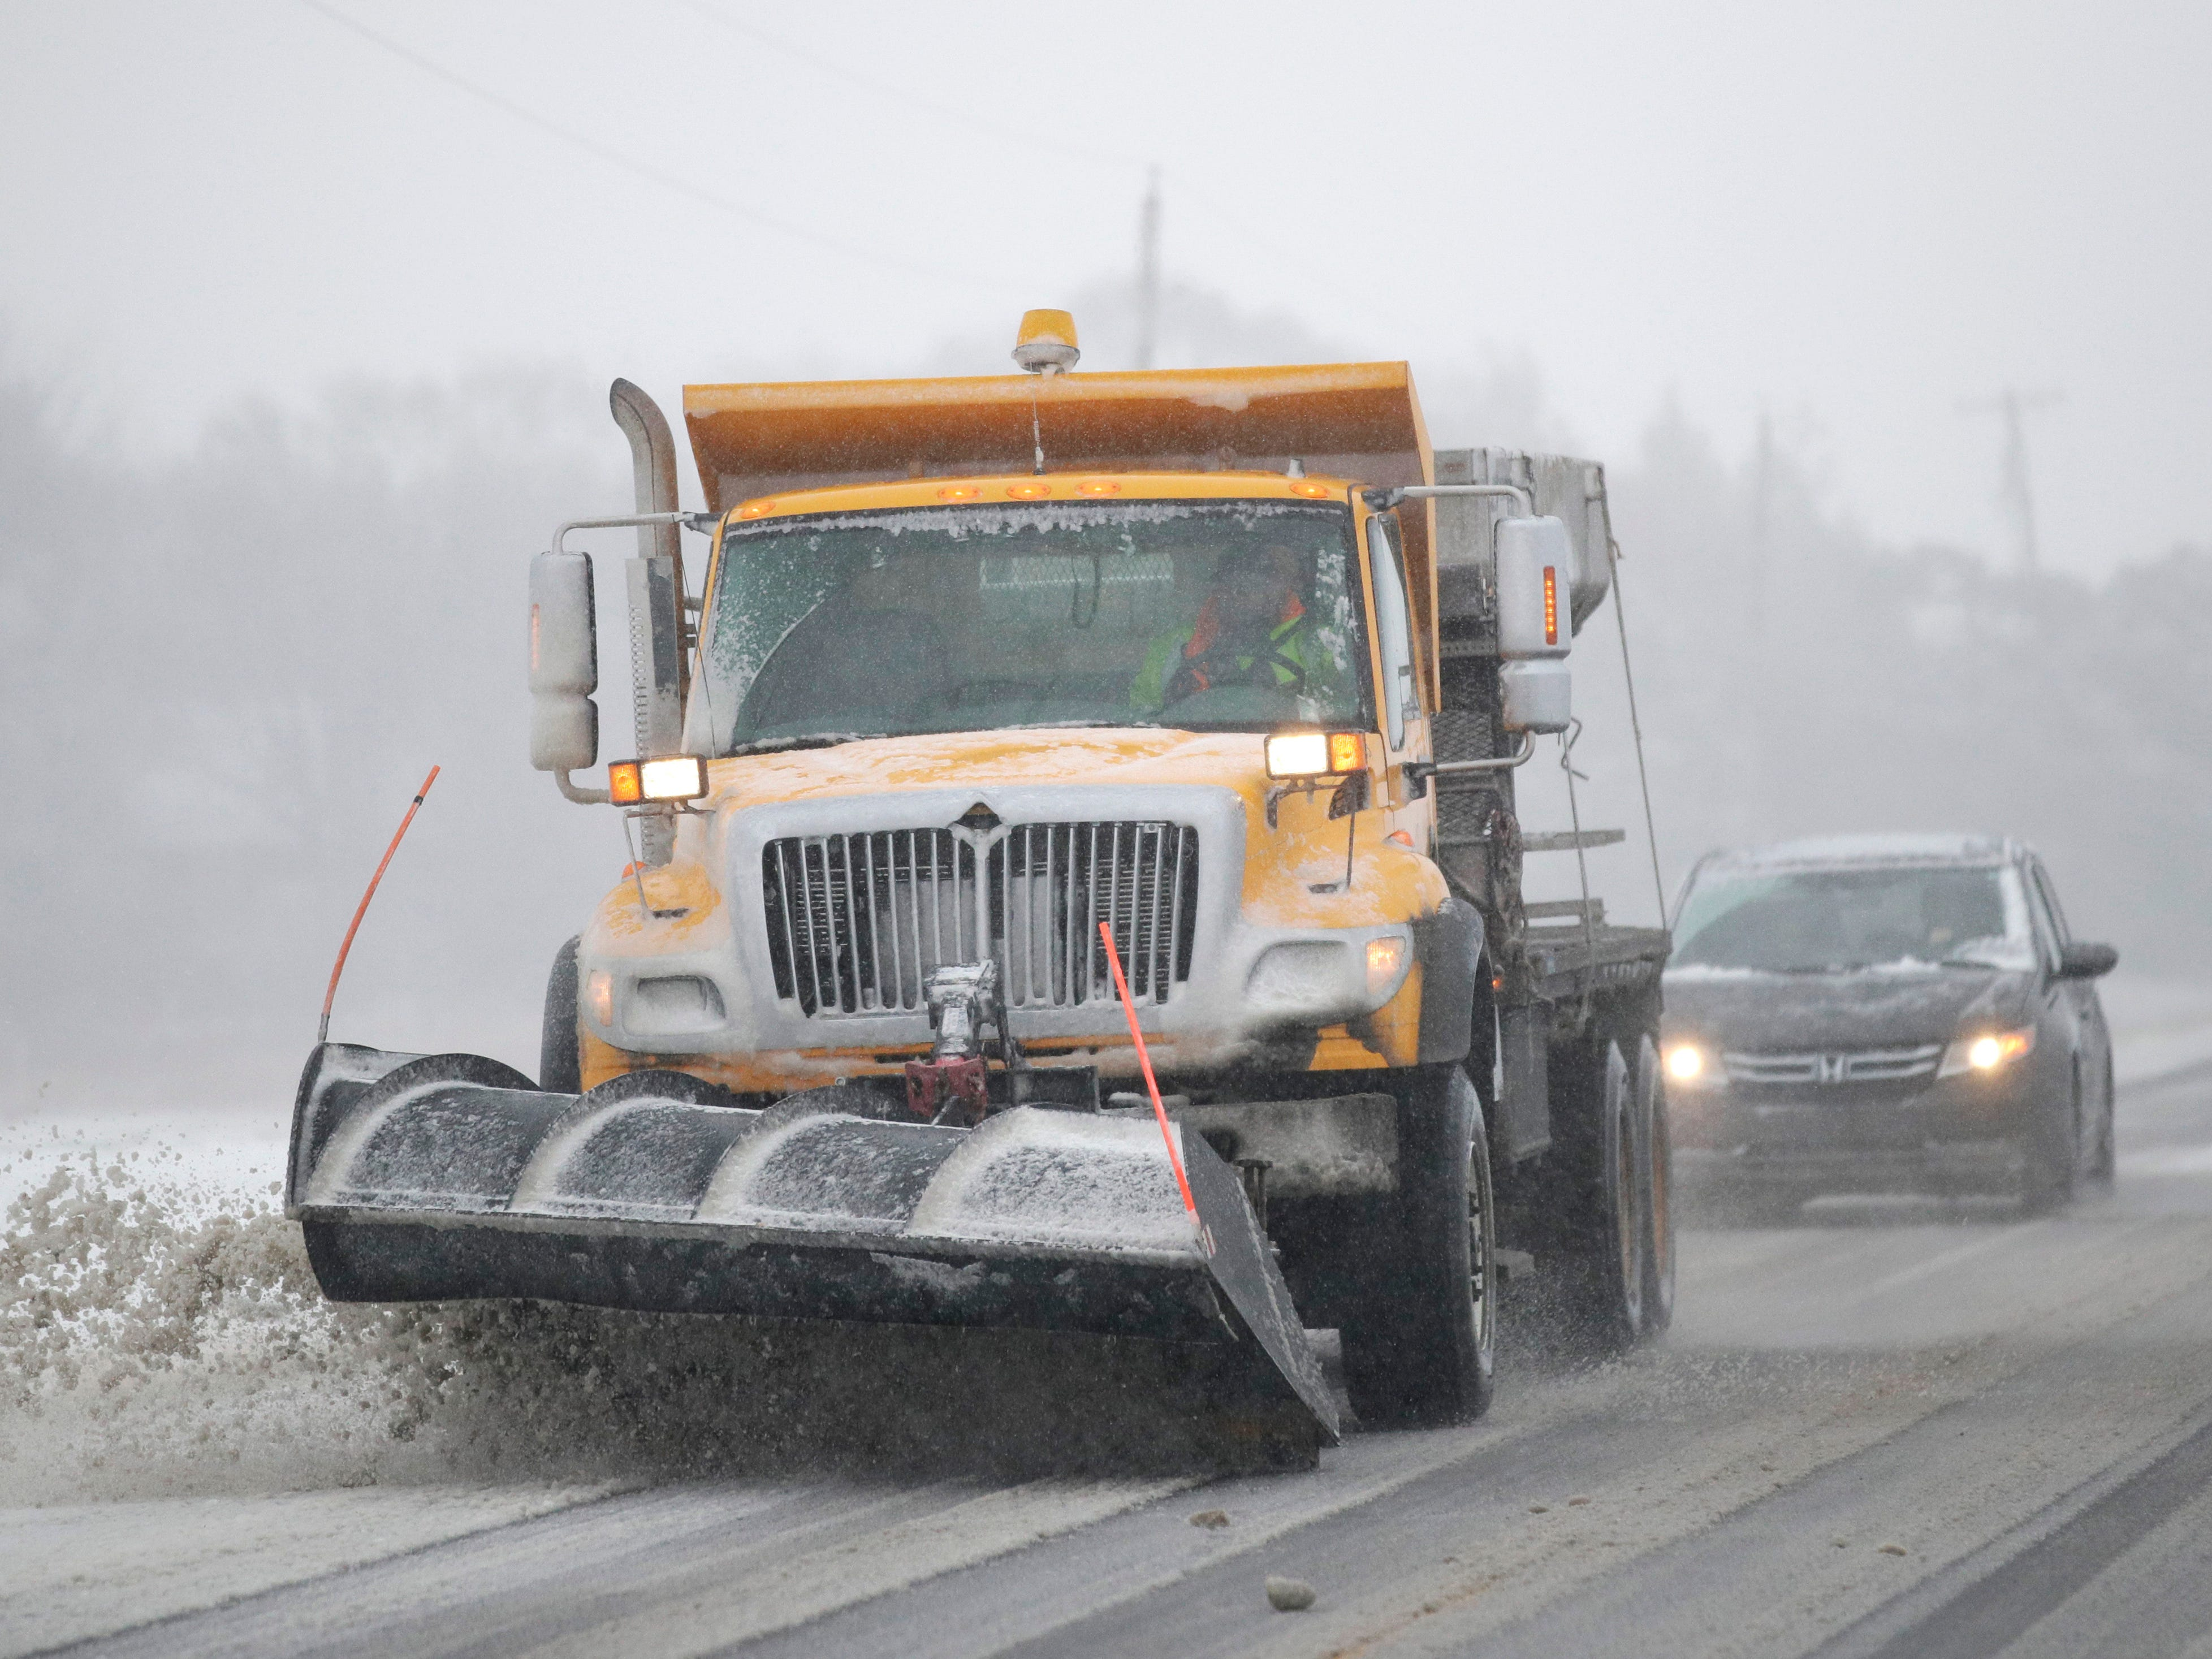 A plow clears snow from Road 438 in Douglas County near Lawrence, Kan., Sunday, Nov. 25, 2018.